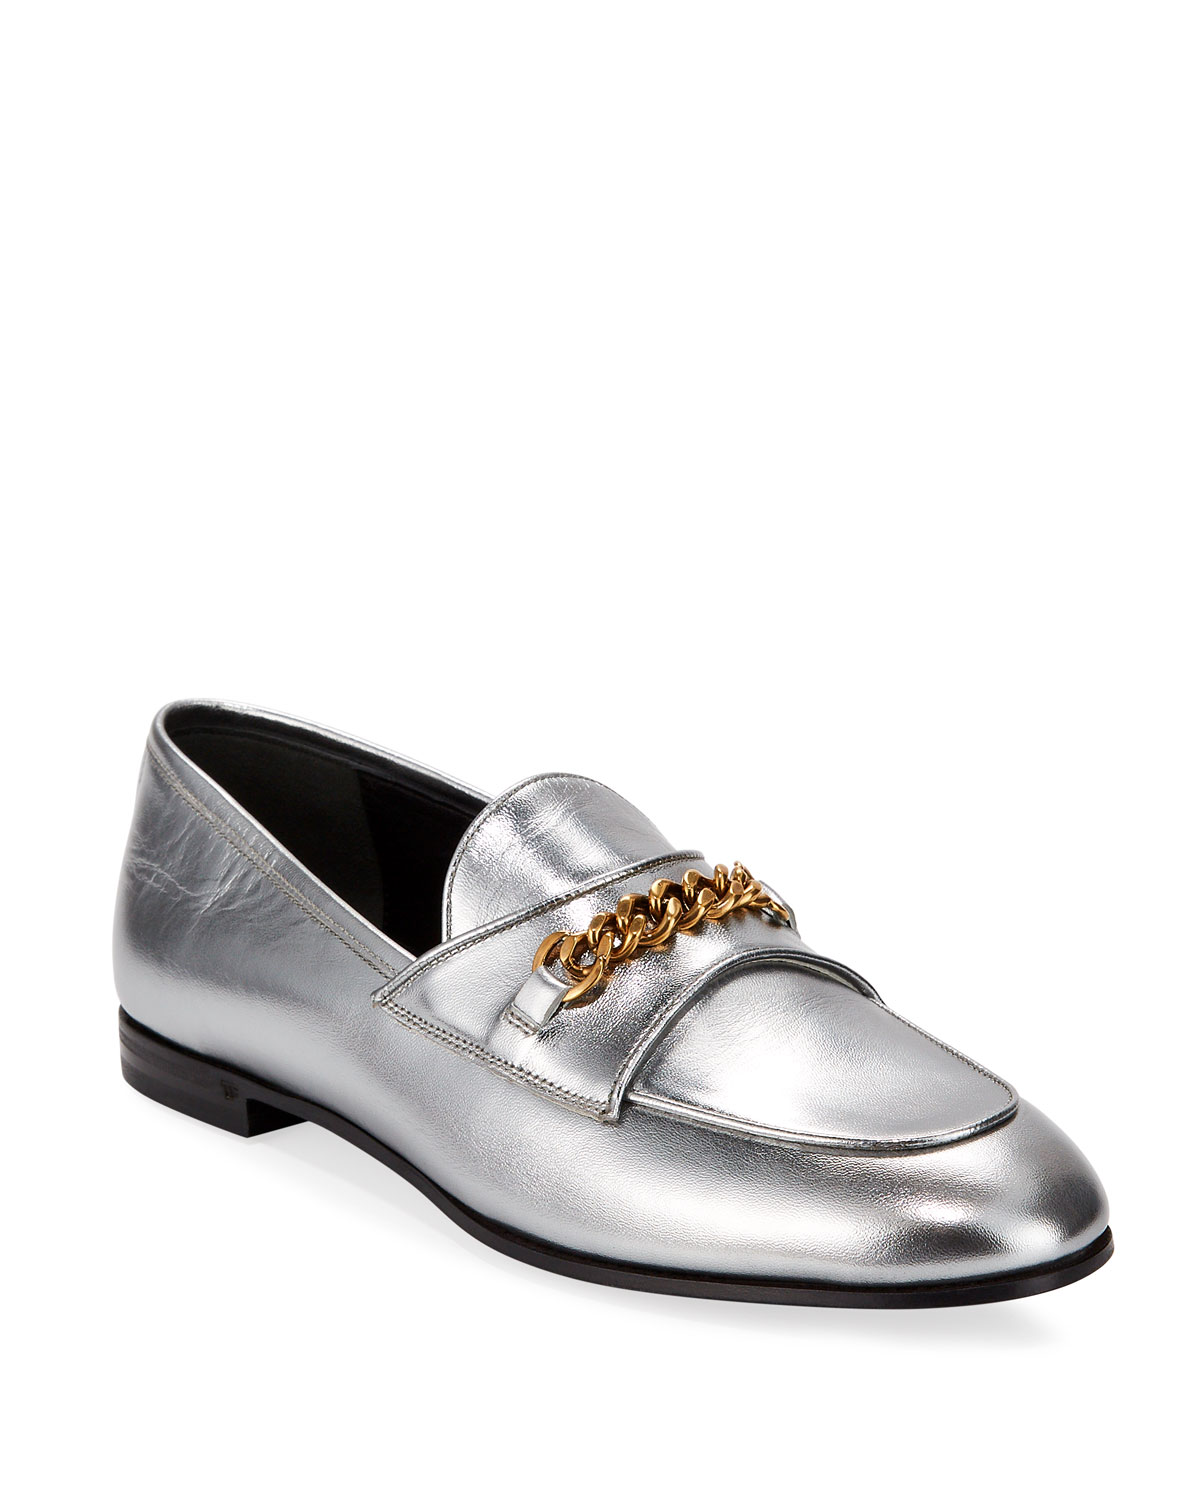 Metallic Loafers with Chain Detail